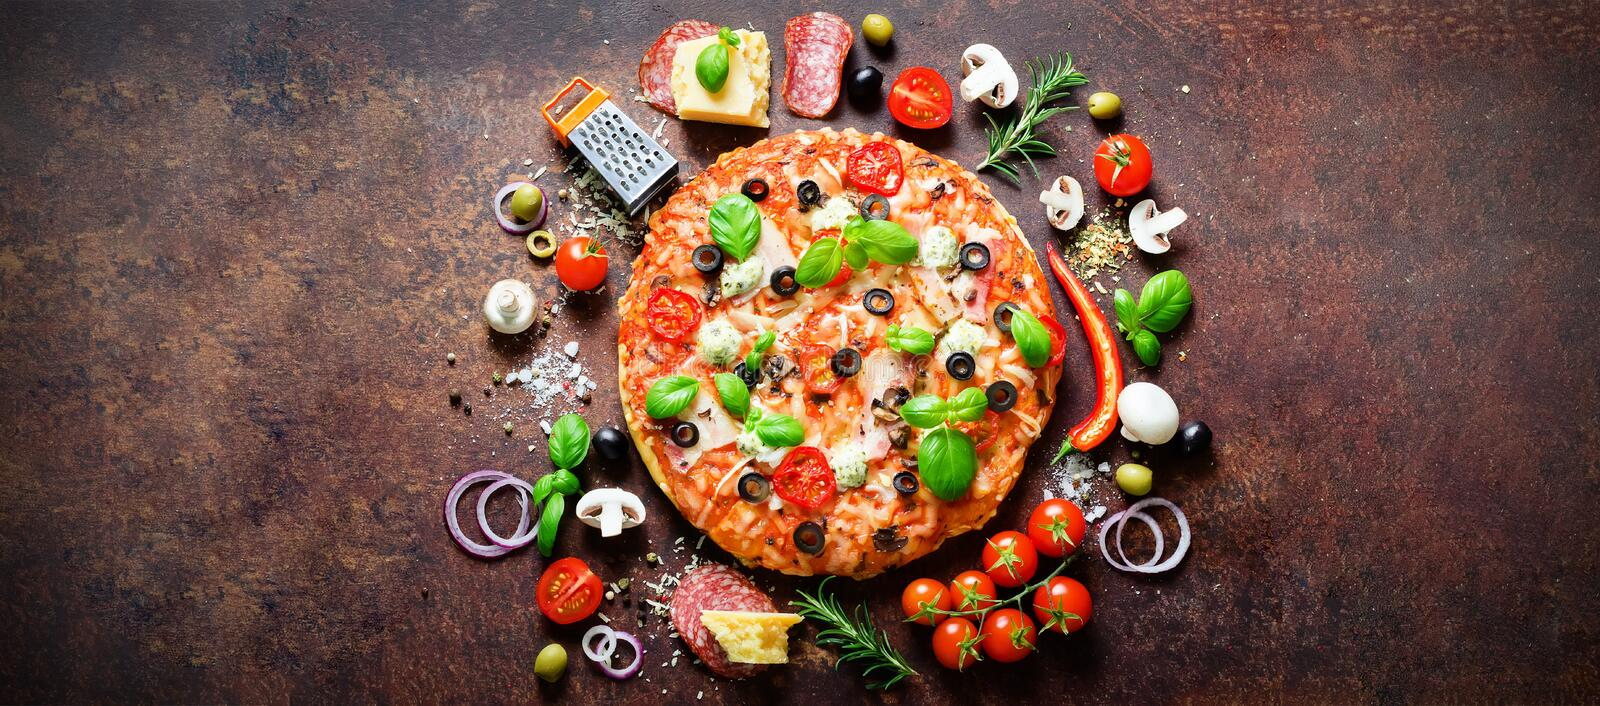 Food ingredients and spices for cooking delicious italian pizza. Mushrooms, tomatoes, cheese, onion, oil, pepper, salt stock images